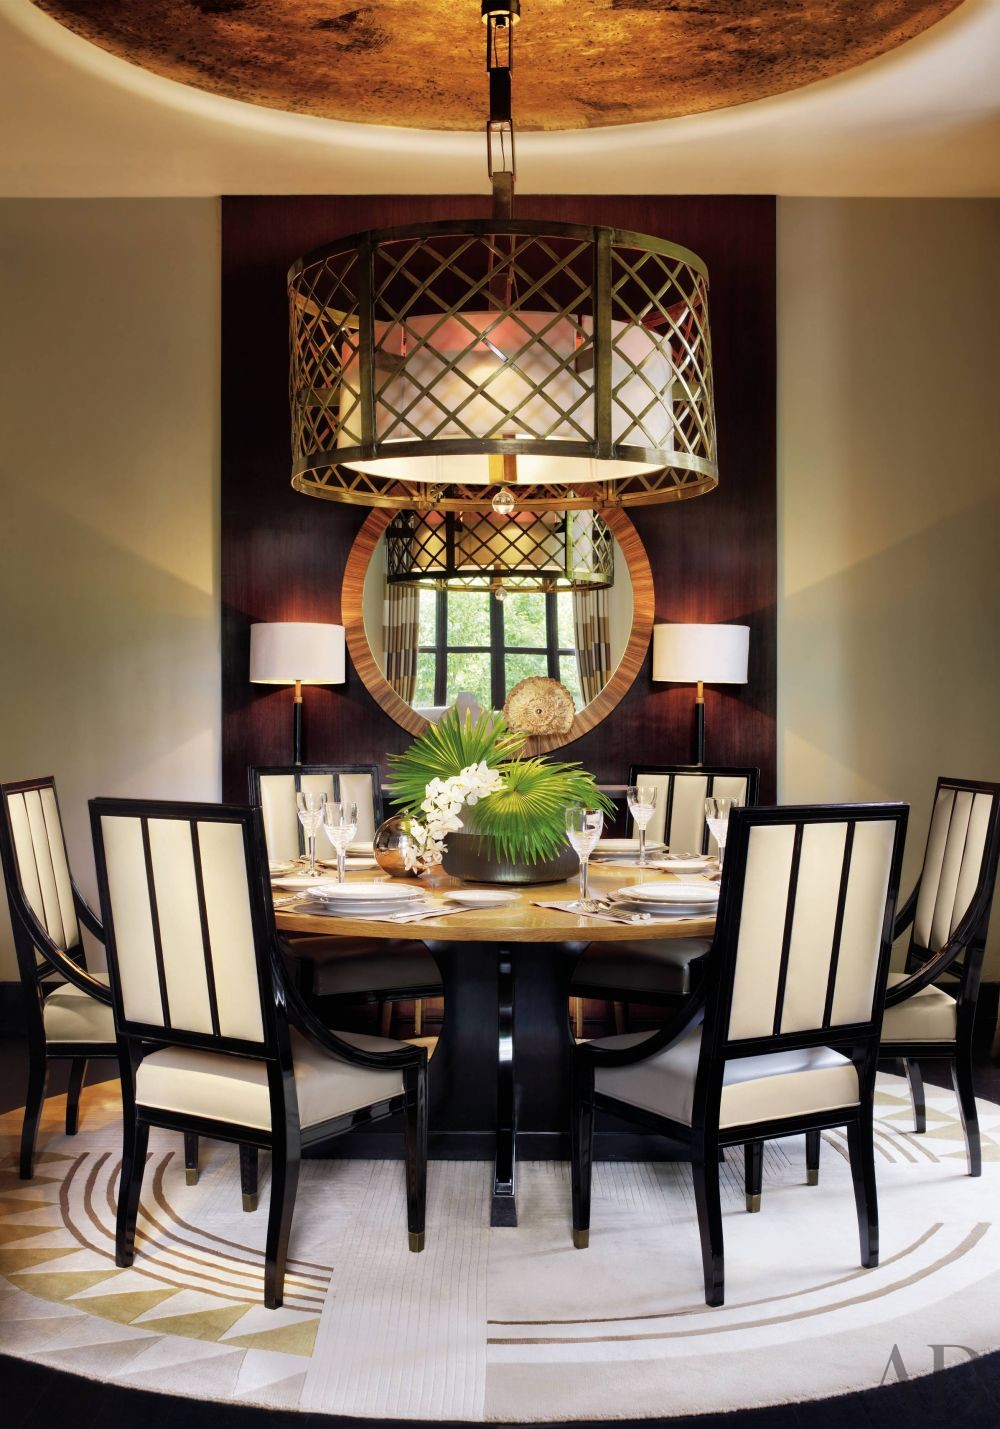 Contemporary Dining Room by Jean-Louis Deniot in New Delhi, India